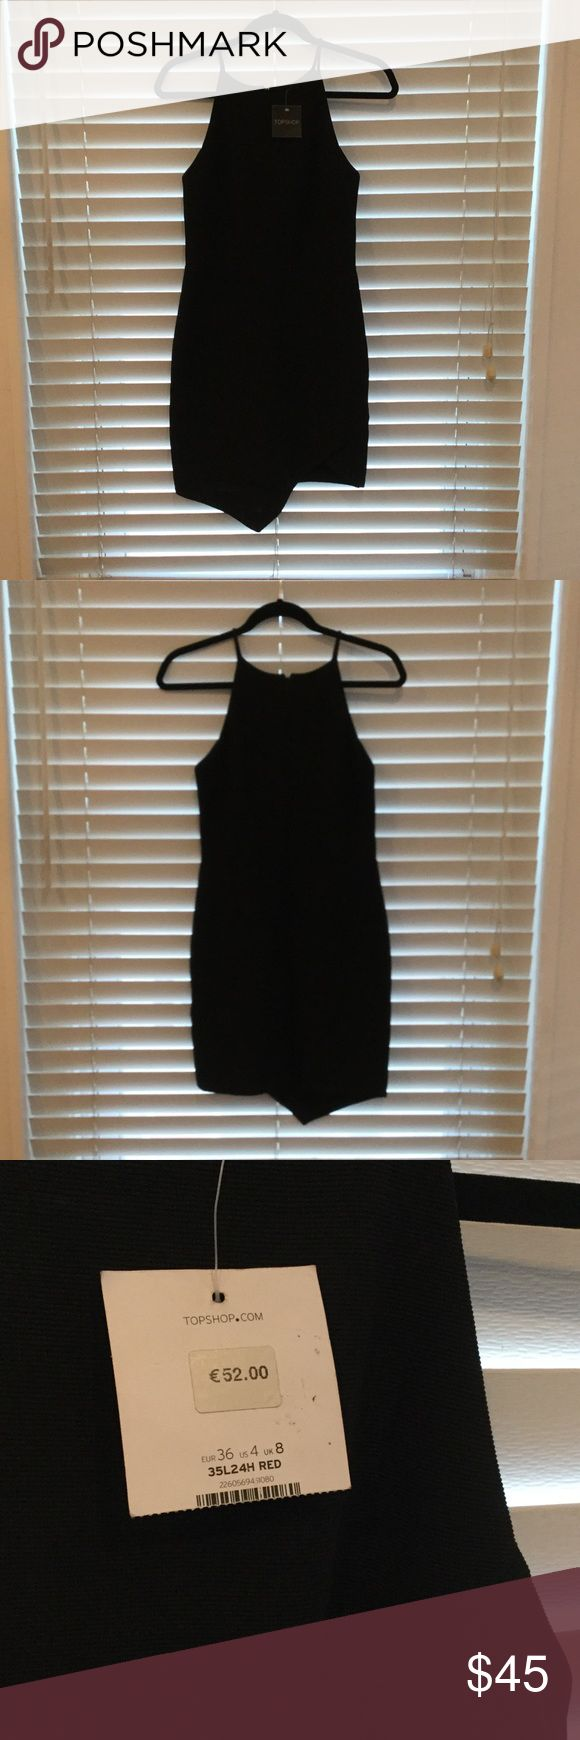 NWT TopShop Dress! A super cute party dress bought from TopShop in London. New with tags, never worn! Has a slight ribbing pattern as seen in the third picture! Topshop Dresses